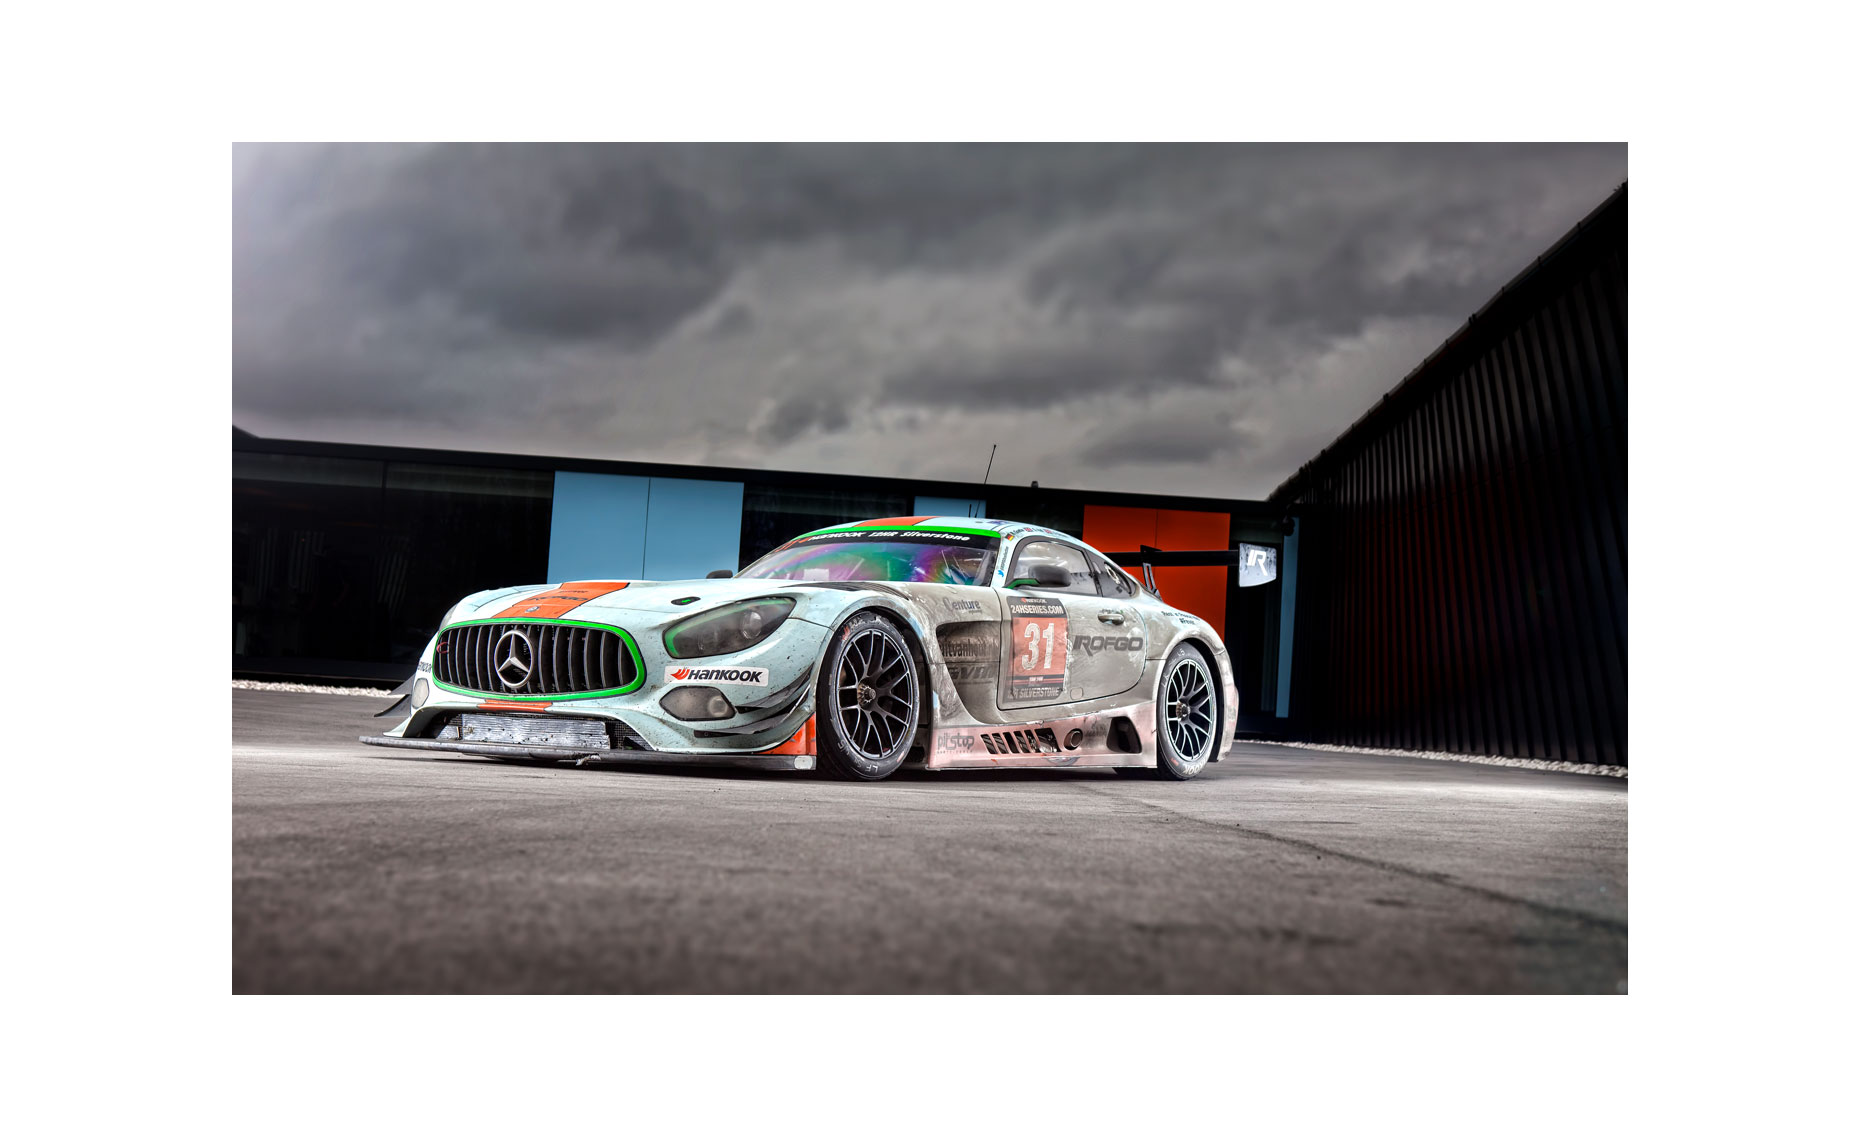 Mercedes-Benz--GT-R-01-NFP-Car-Photo-2